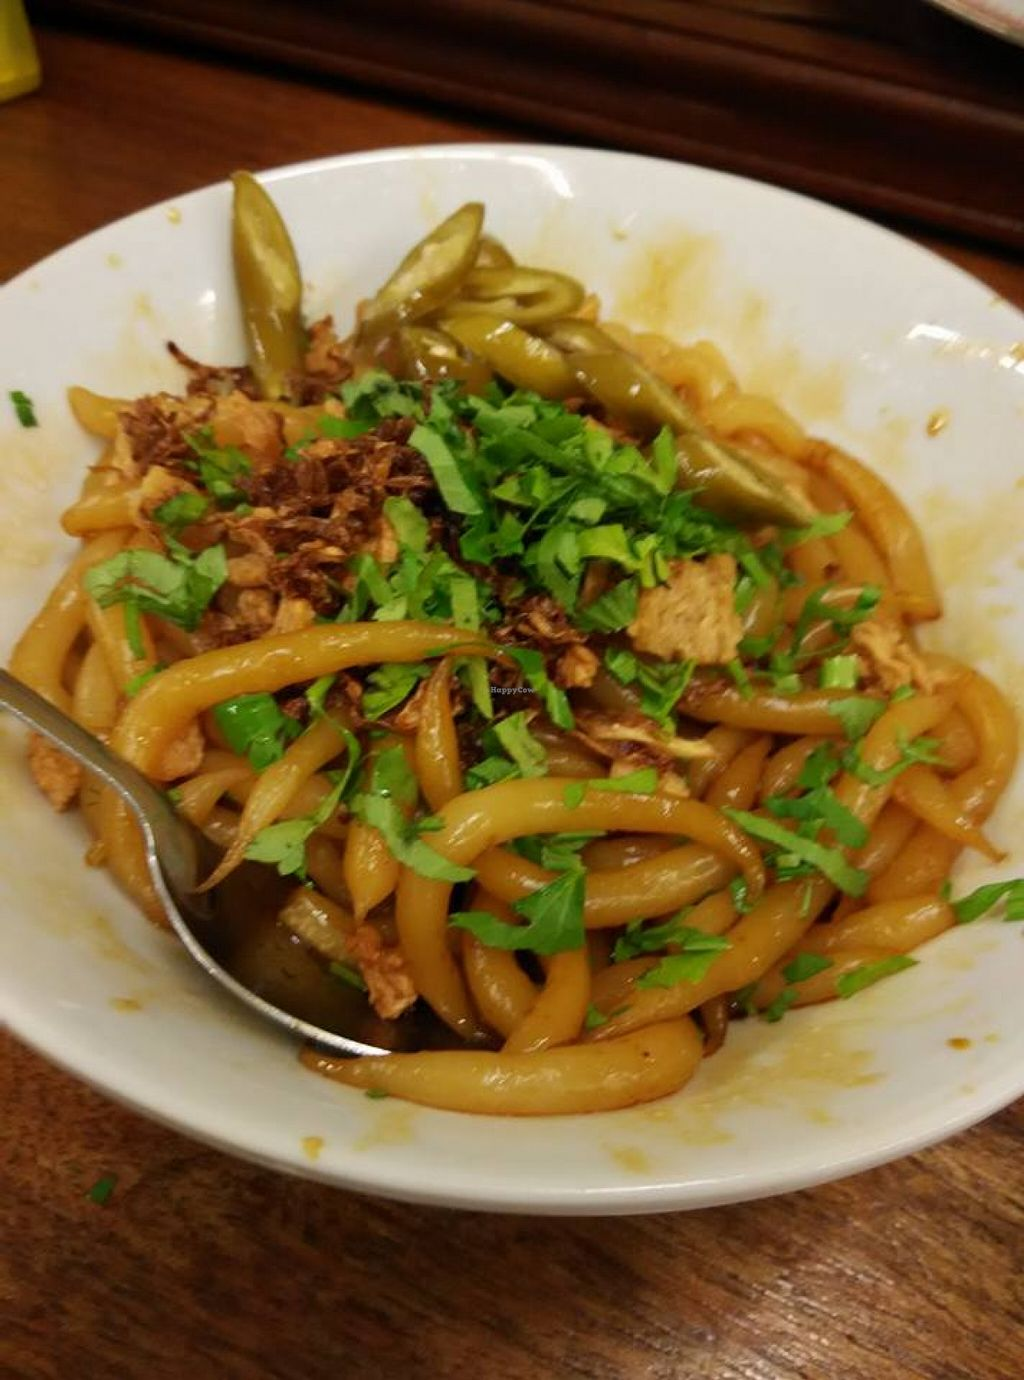 """Photo of Vege Sense  by <a href=""""/members/profile/community"""">community</a> <br/>stir fried noodles  <br/> October 17, 2015  - <a href='/contact/abuse/image/64405/121603'>Report</a>"""